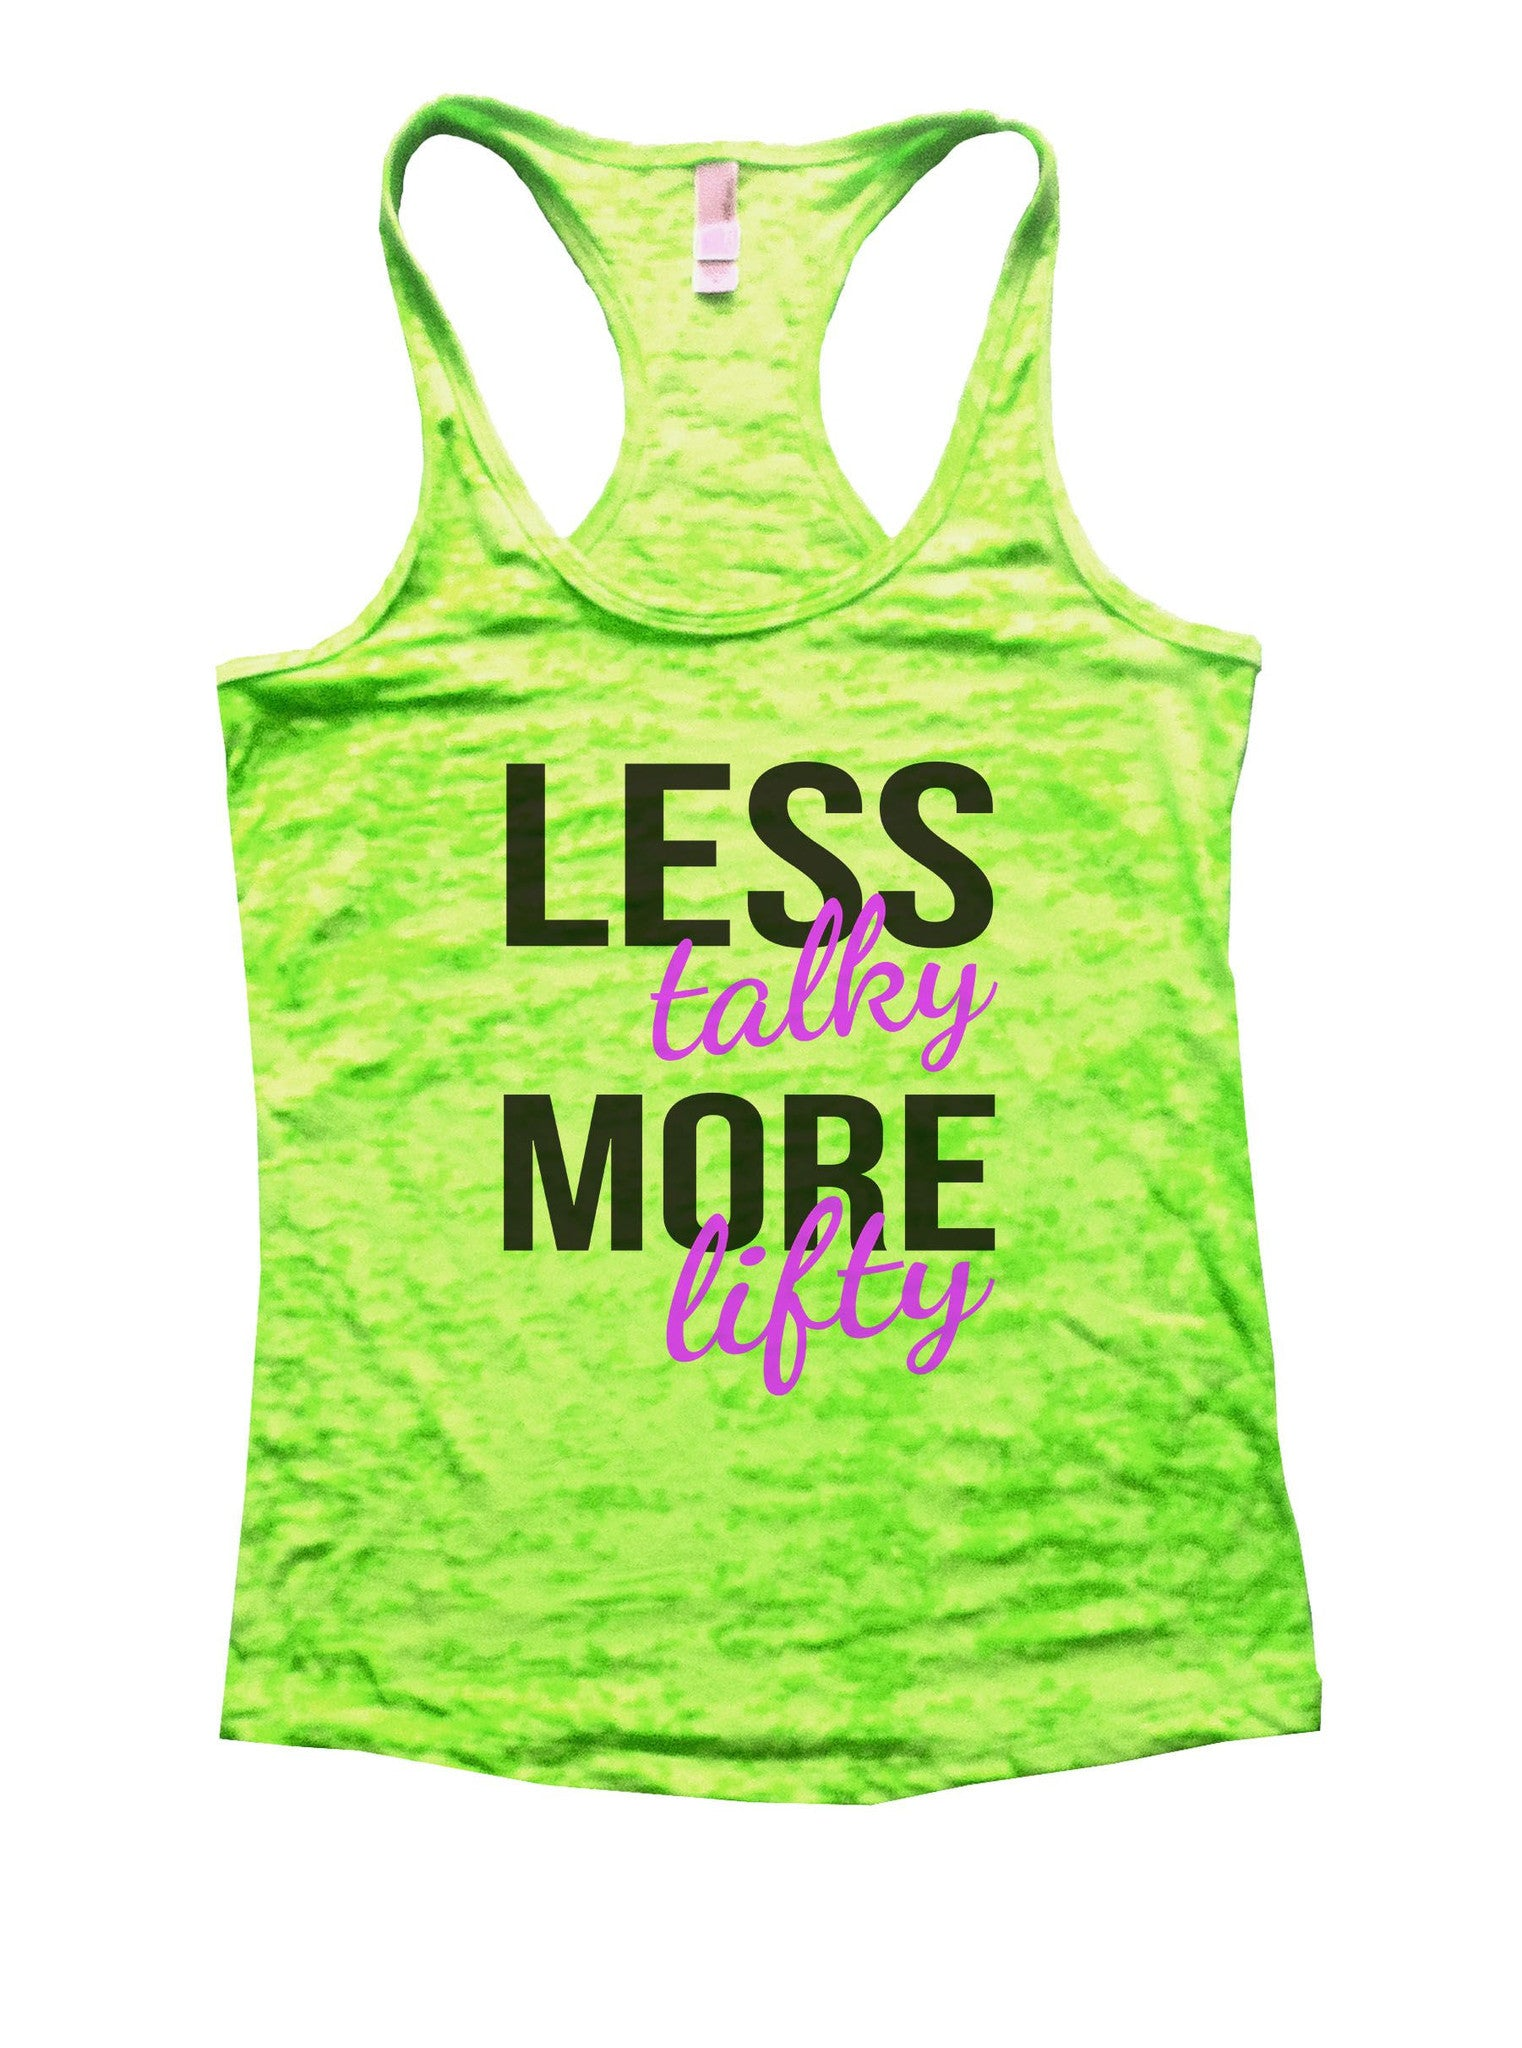 Less Talky More Lifty Burnout Tank Top By BurnoutTankTops.com - 874 - Funny Shirts Tank Tops Burnouts and Triblends  - 2